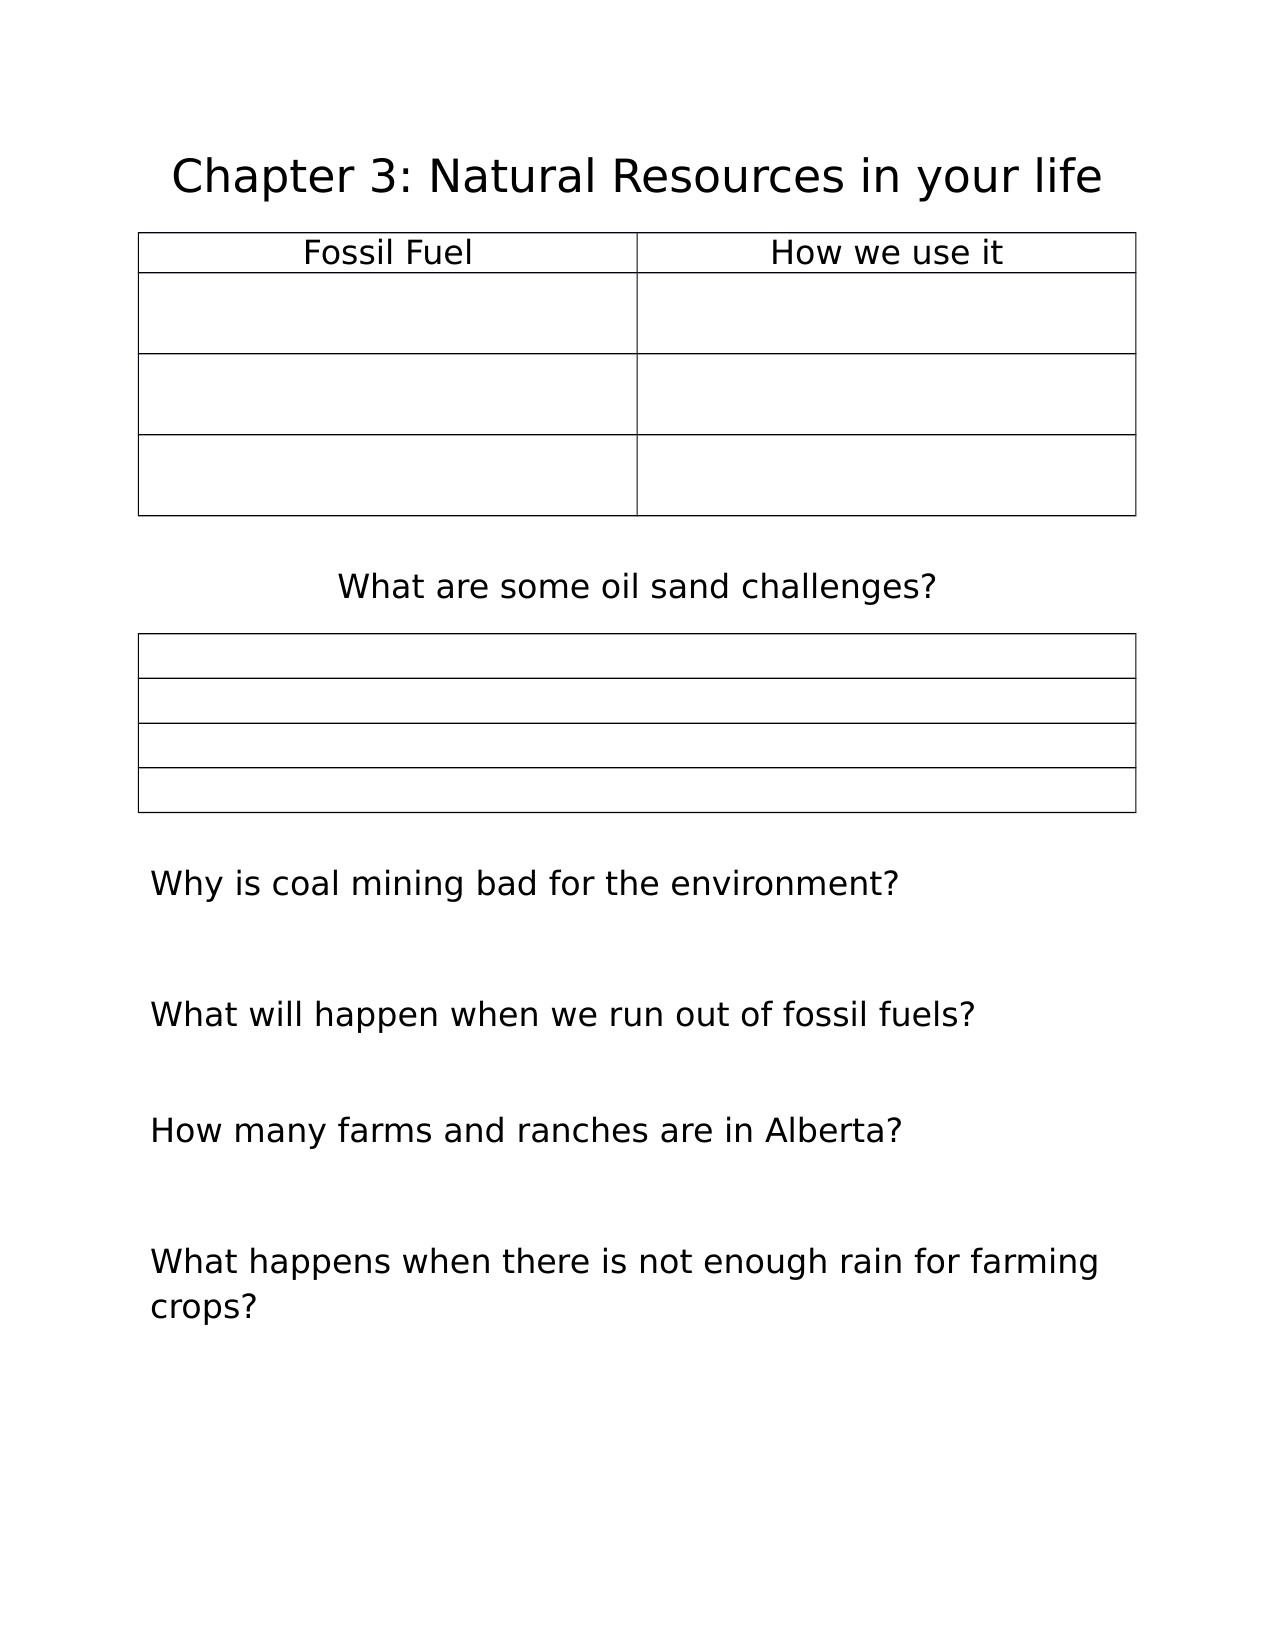 medium resolution of Voices of Alberta Chapter 3 Resource Preview   Social studies